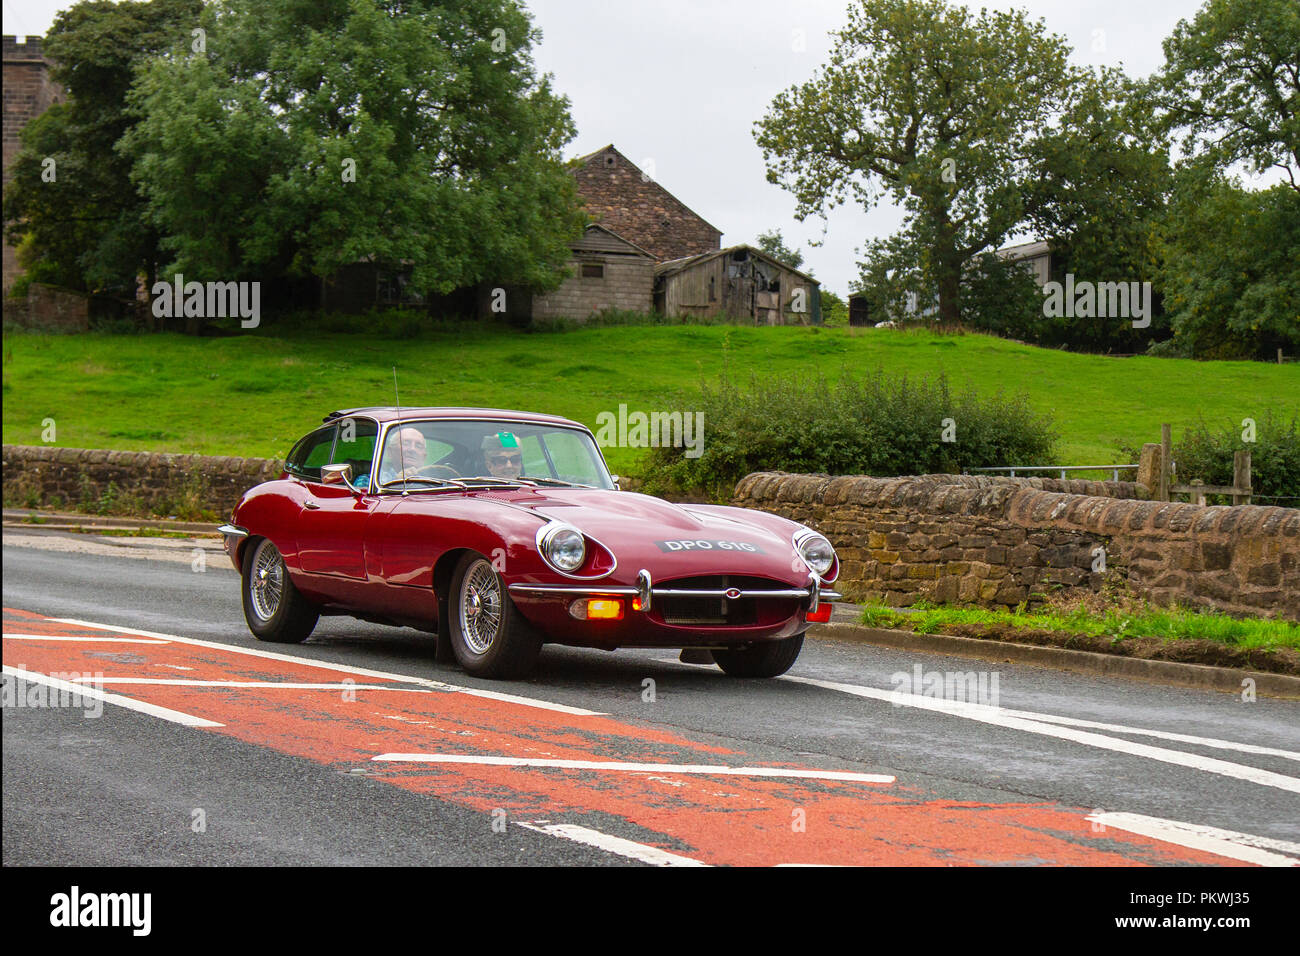 Red 1969 Jaguar 'E' Type Classic, vintage, veteran, cars of yesteryear, restored collectibles at Hoghton Tower Class Cars Rally, UK - Stock Image